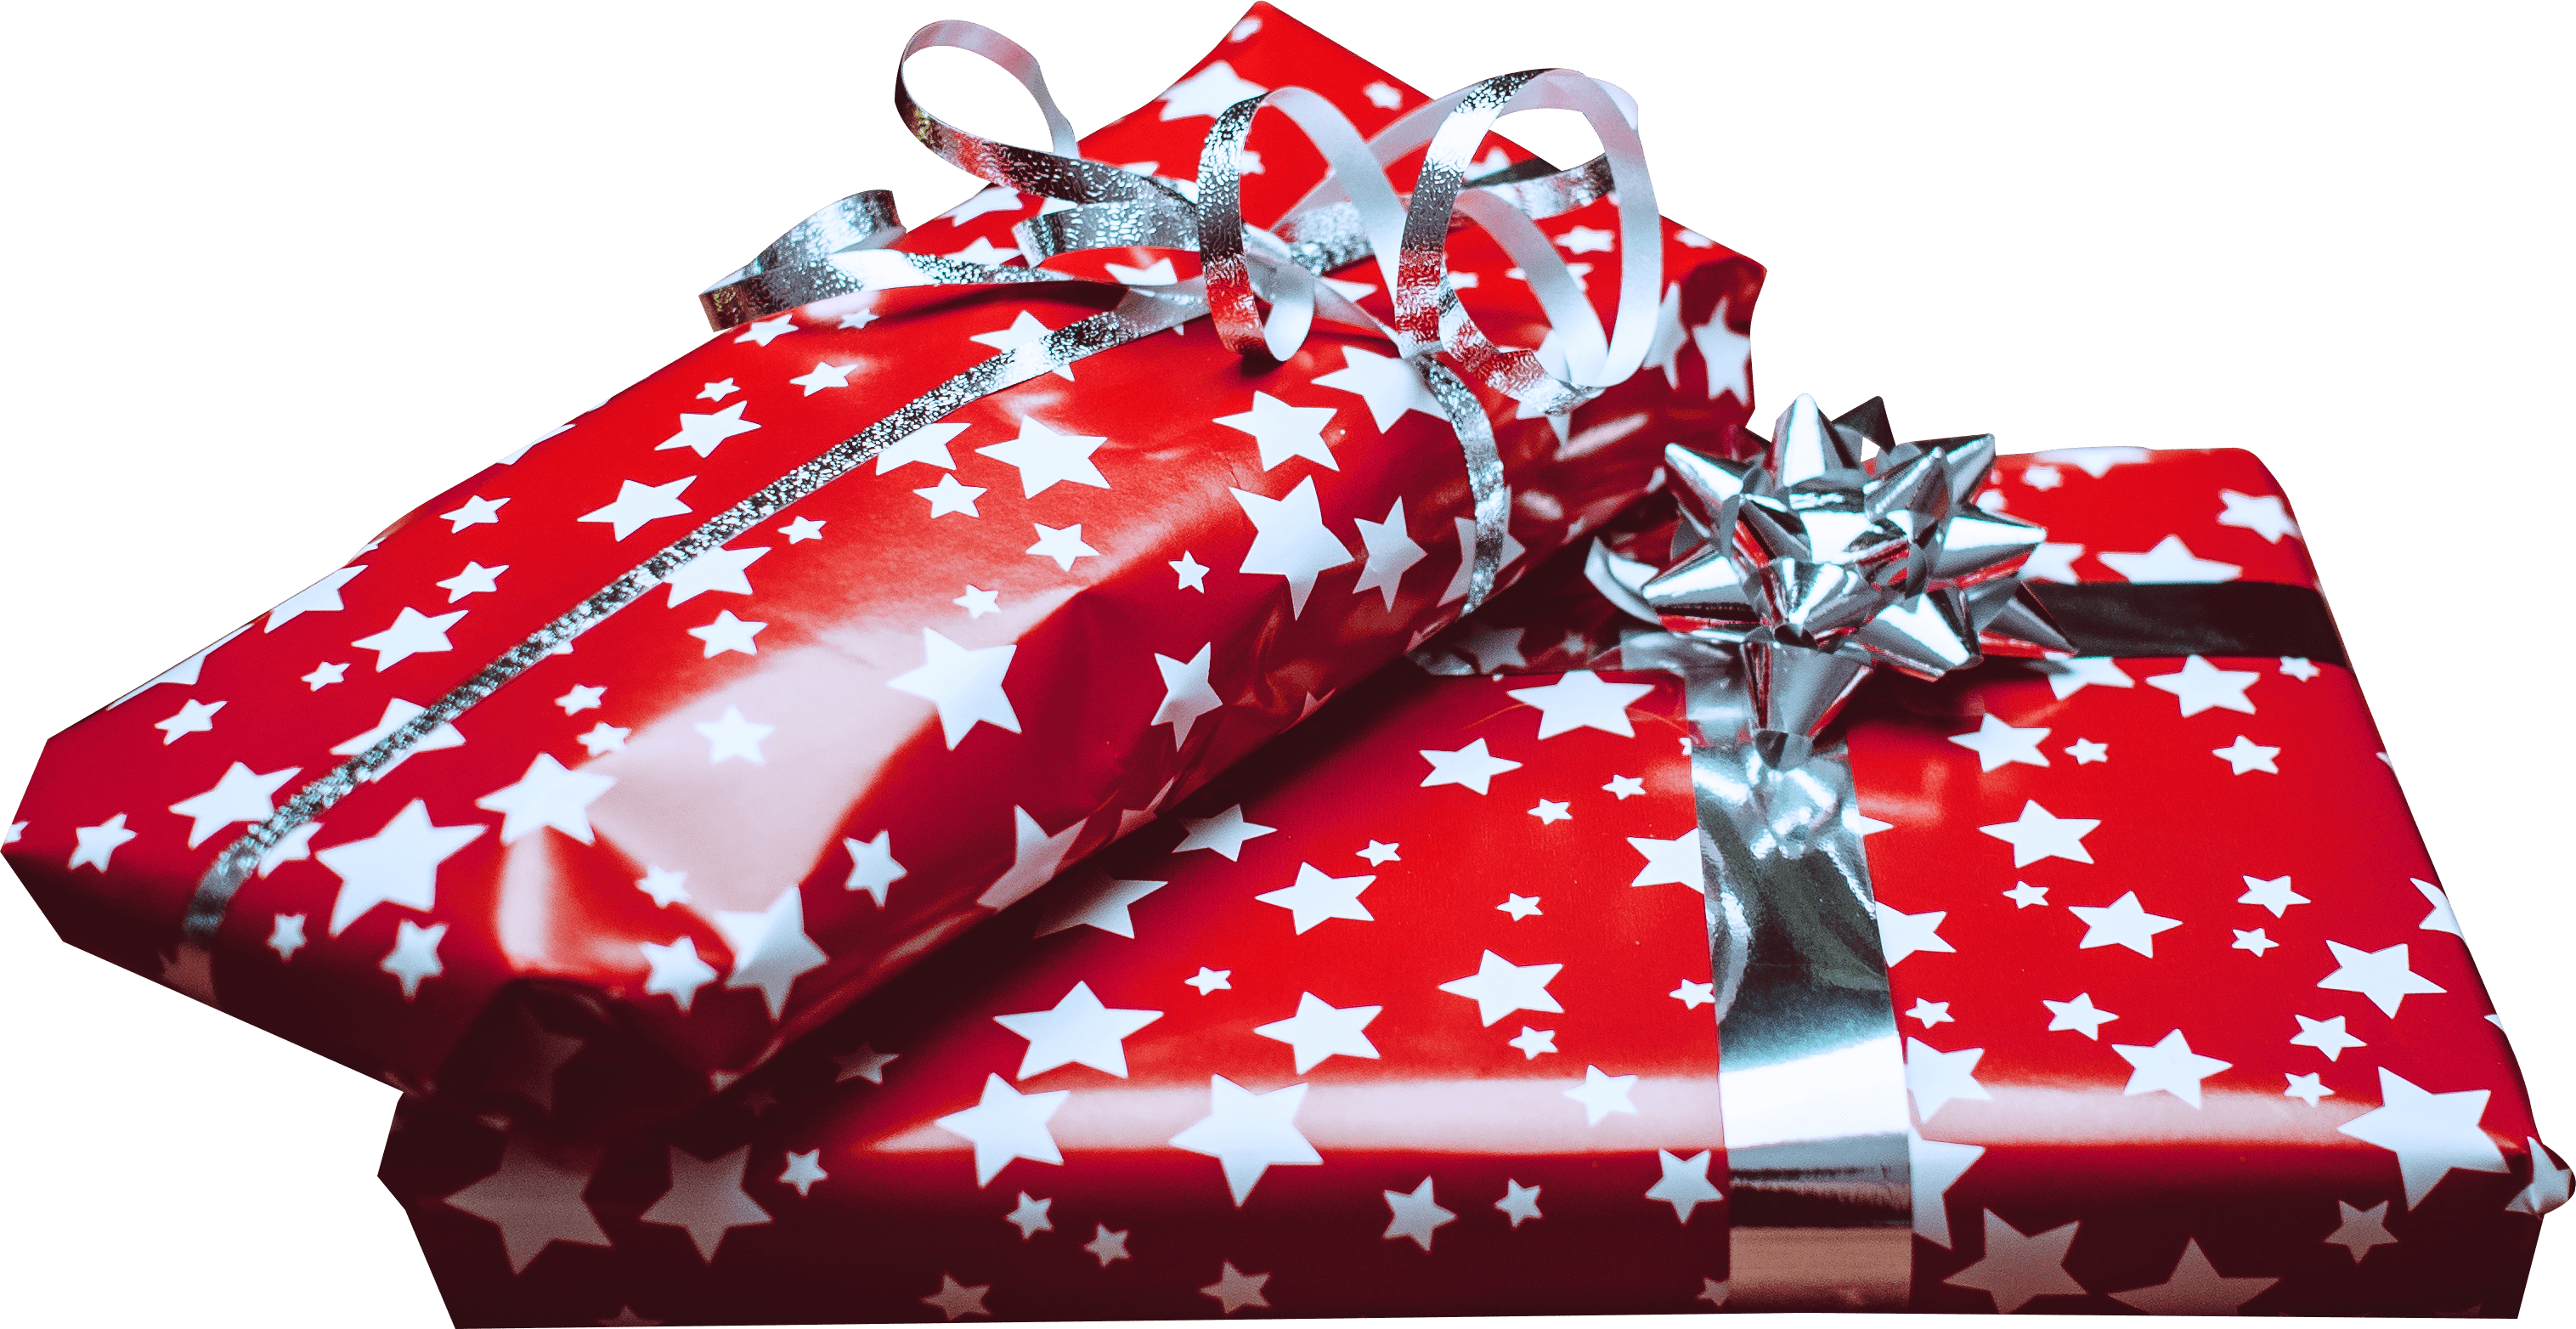 Christmas Presents Png.Christmas Gifts Red And Stars Transparent Png Stickpng